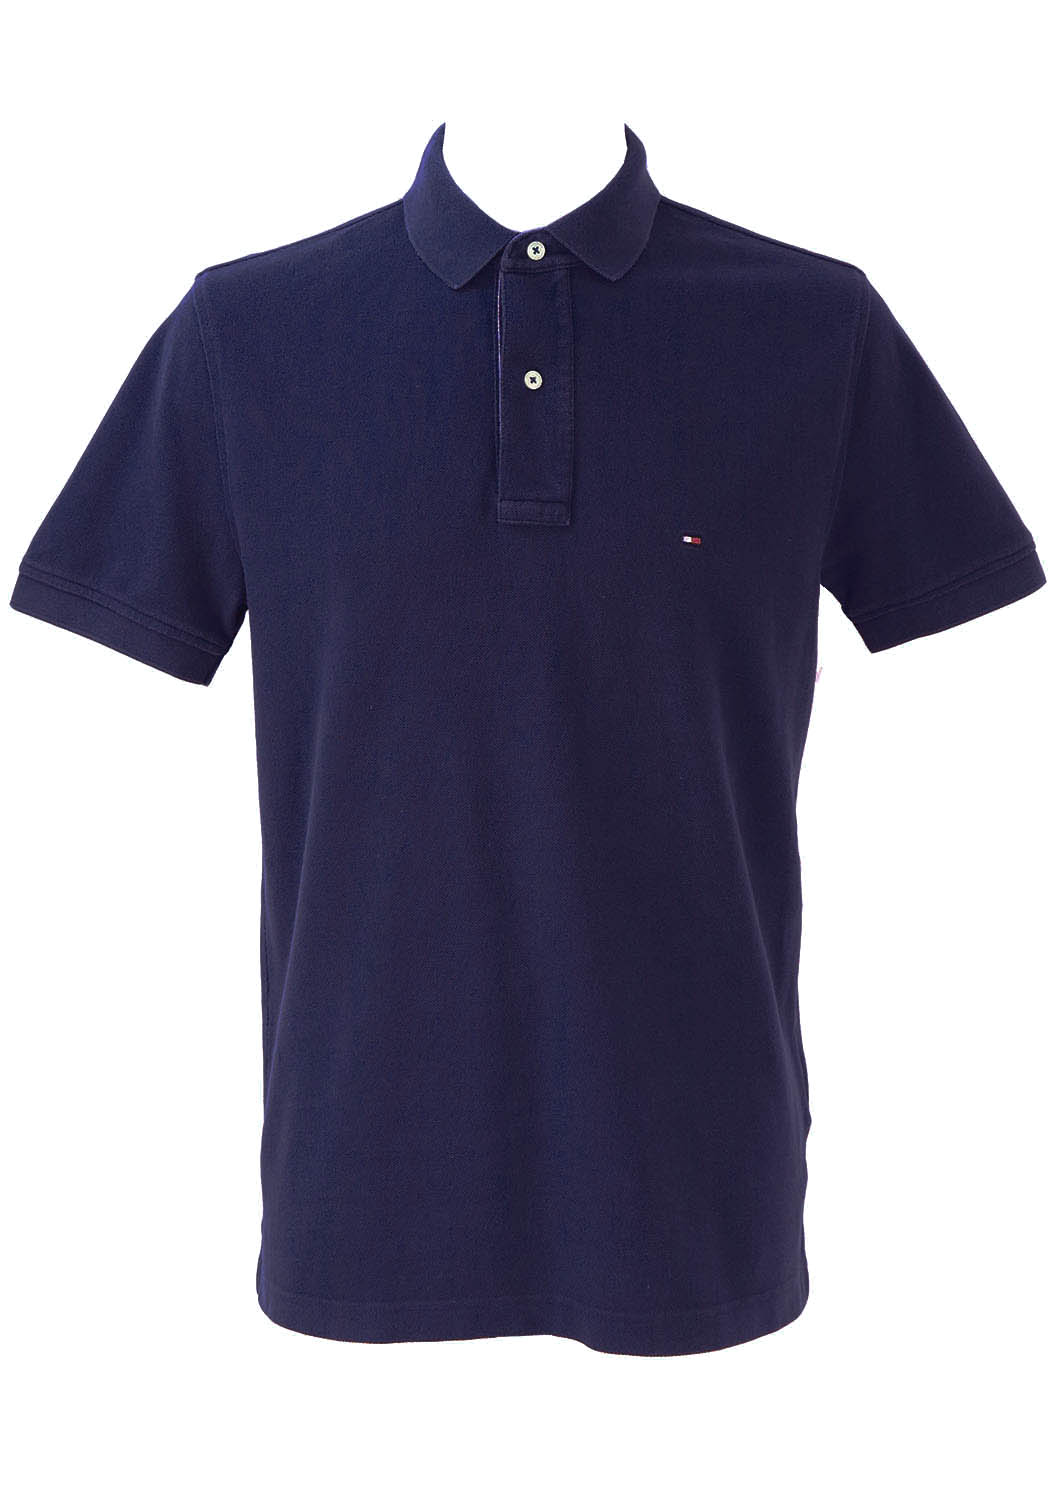 450ae808 Tommy Hilfiger Blue Polo Shirt T-Shirt – L – Reign Vintage